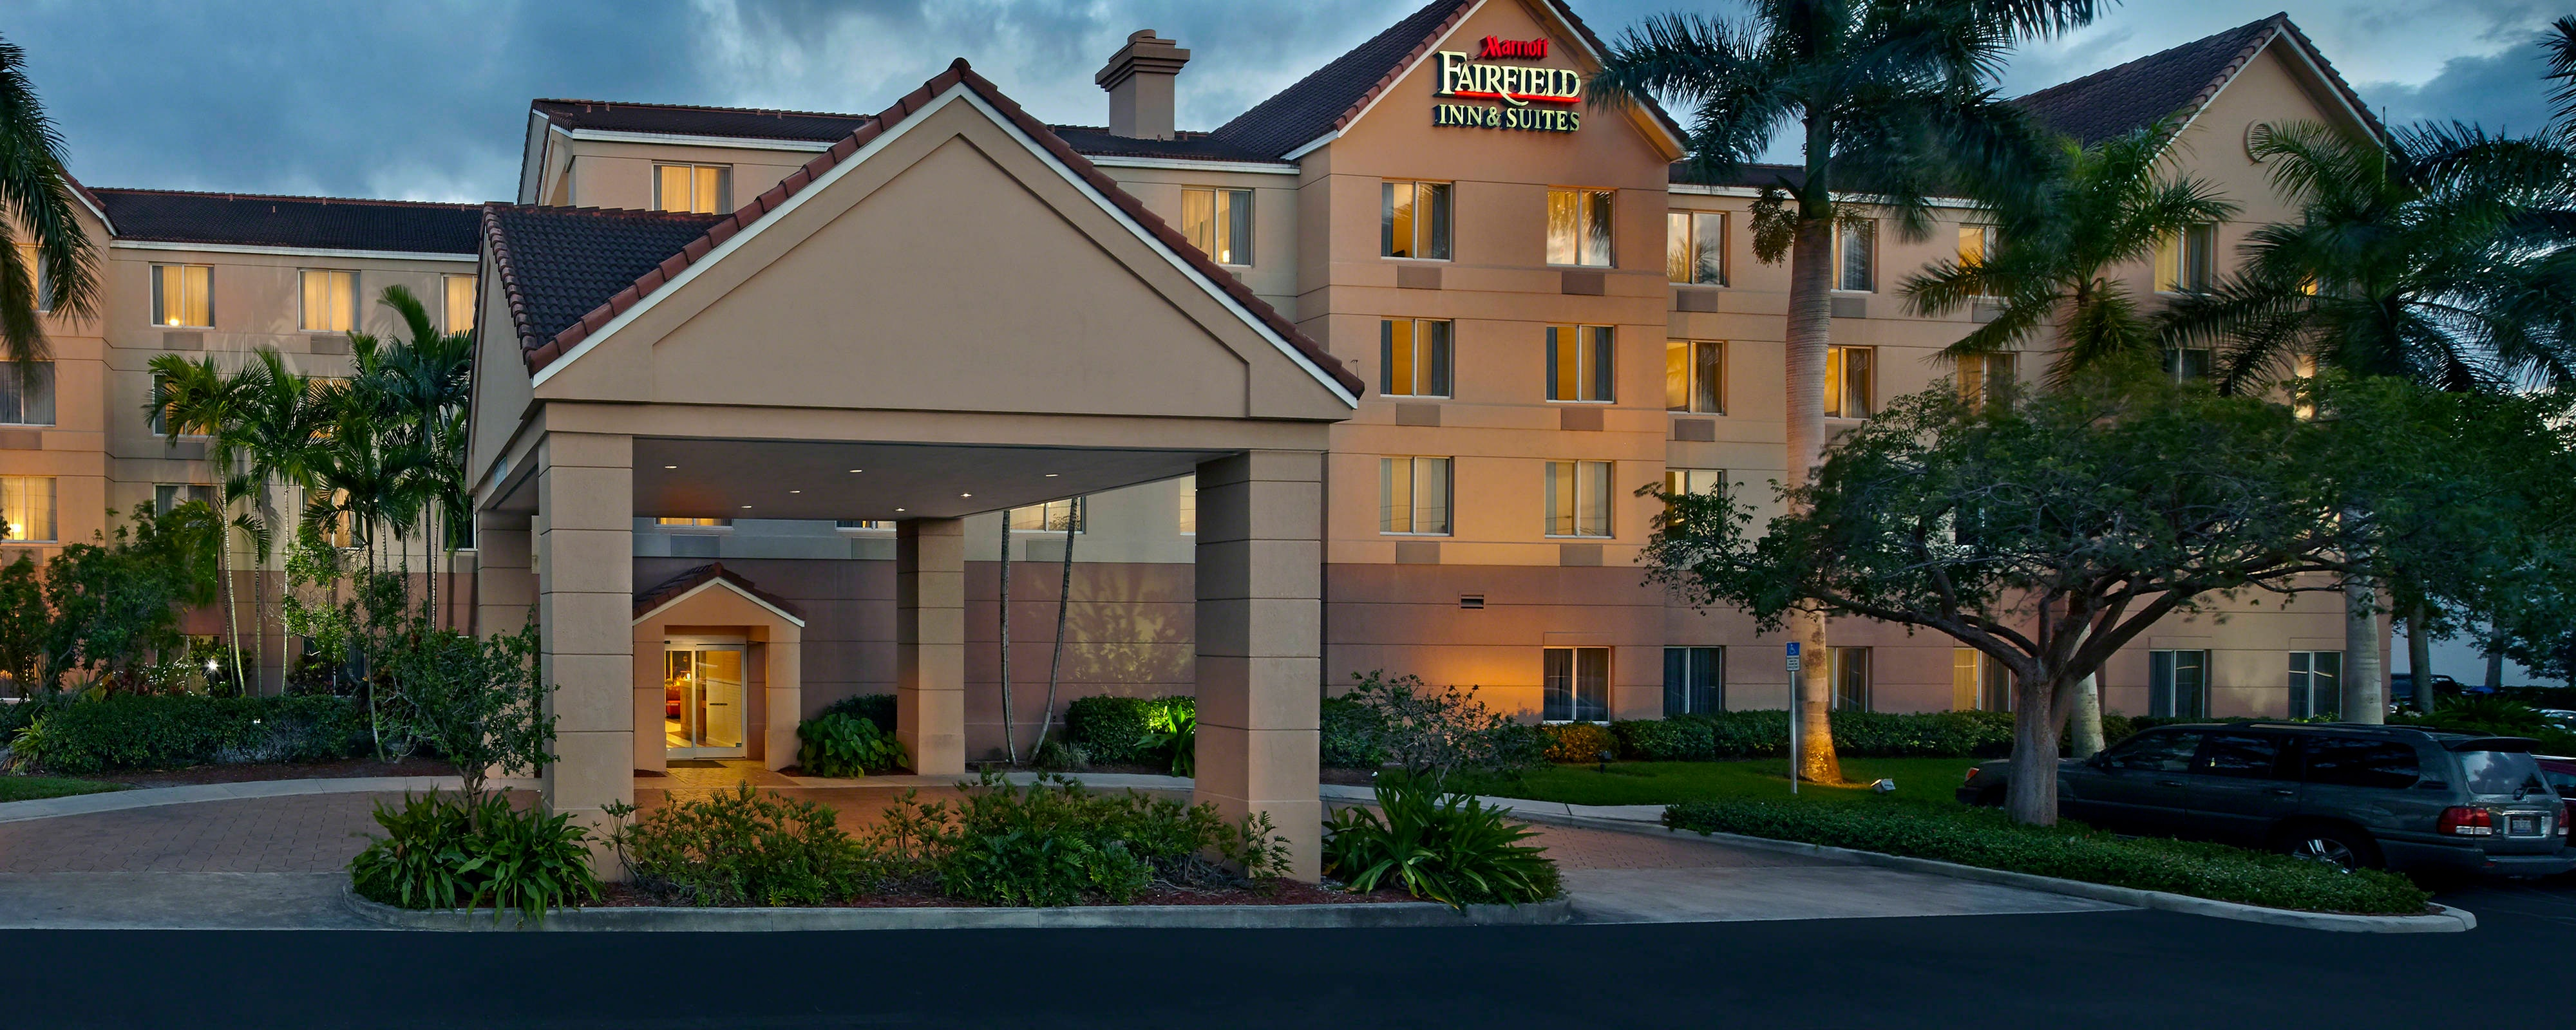 Fairfield Inn and Suites Boca Raton